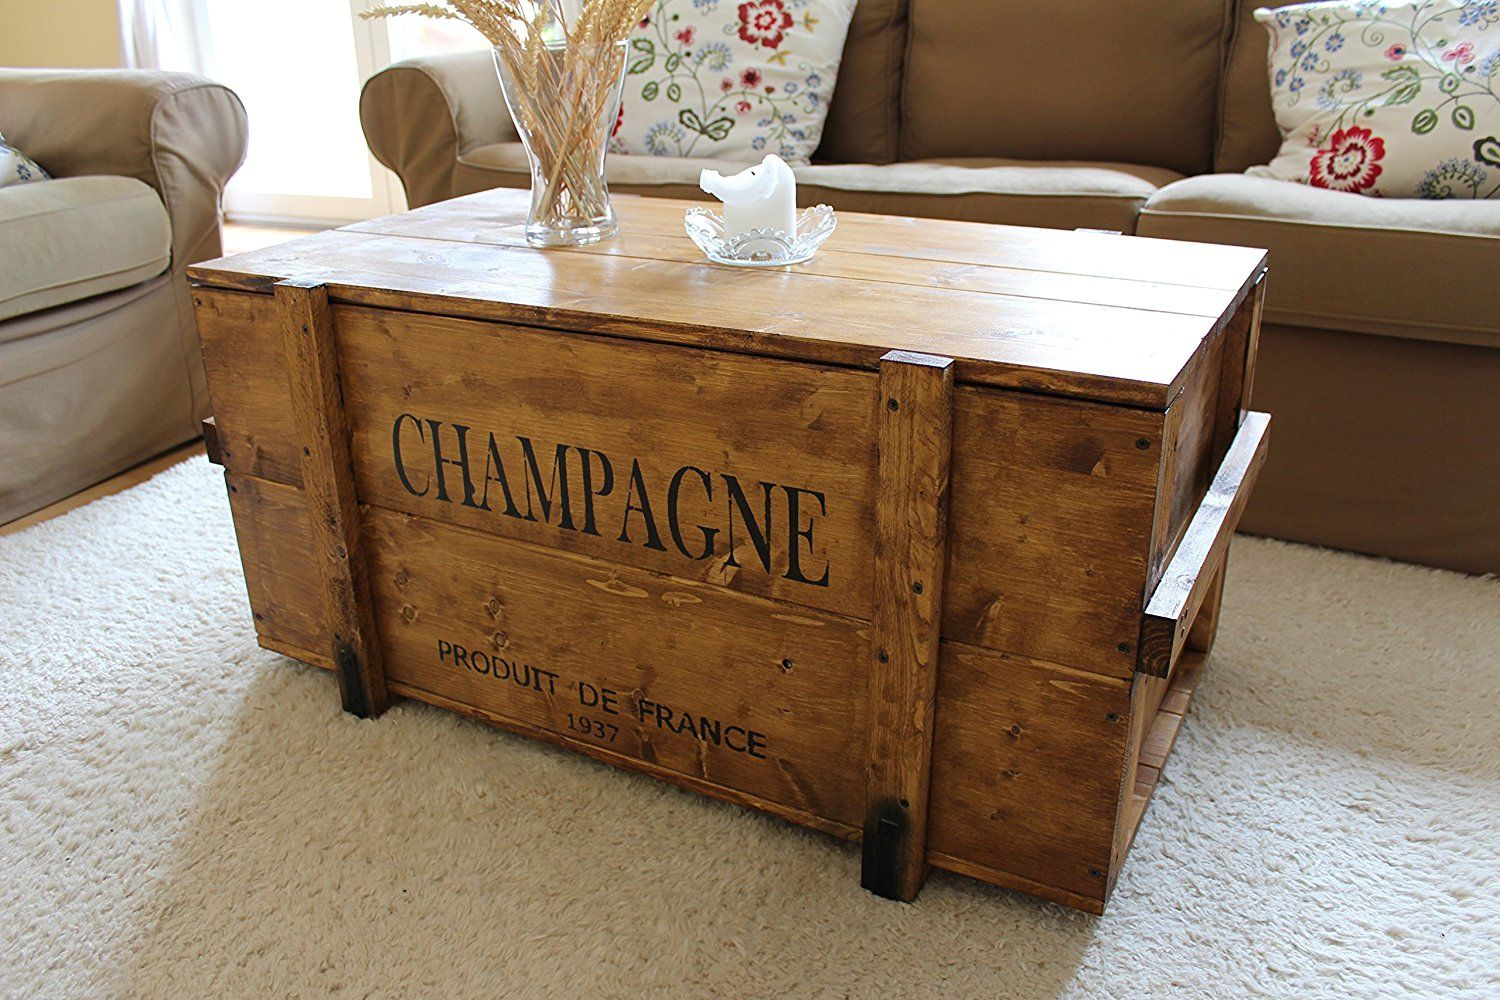 Uncle Joe S 75759 Truhe Couchtisch Holzkiste Champagne Vintage Shabby Chic Holz 98 X 55 X 46 Cm Hellbraun Indust Couchtisch Vintage Holzkisten Truhe Tisch